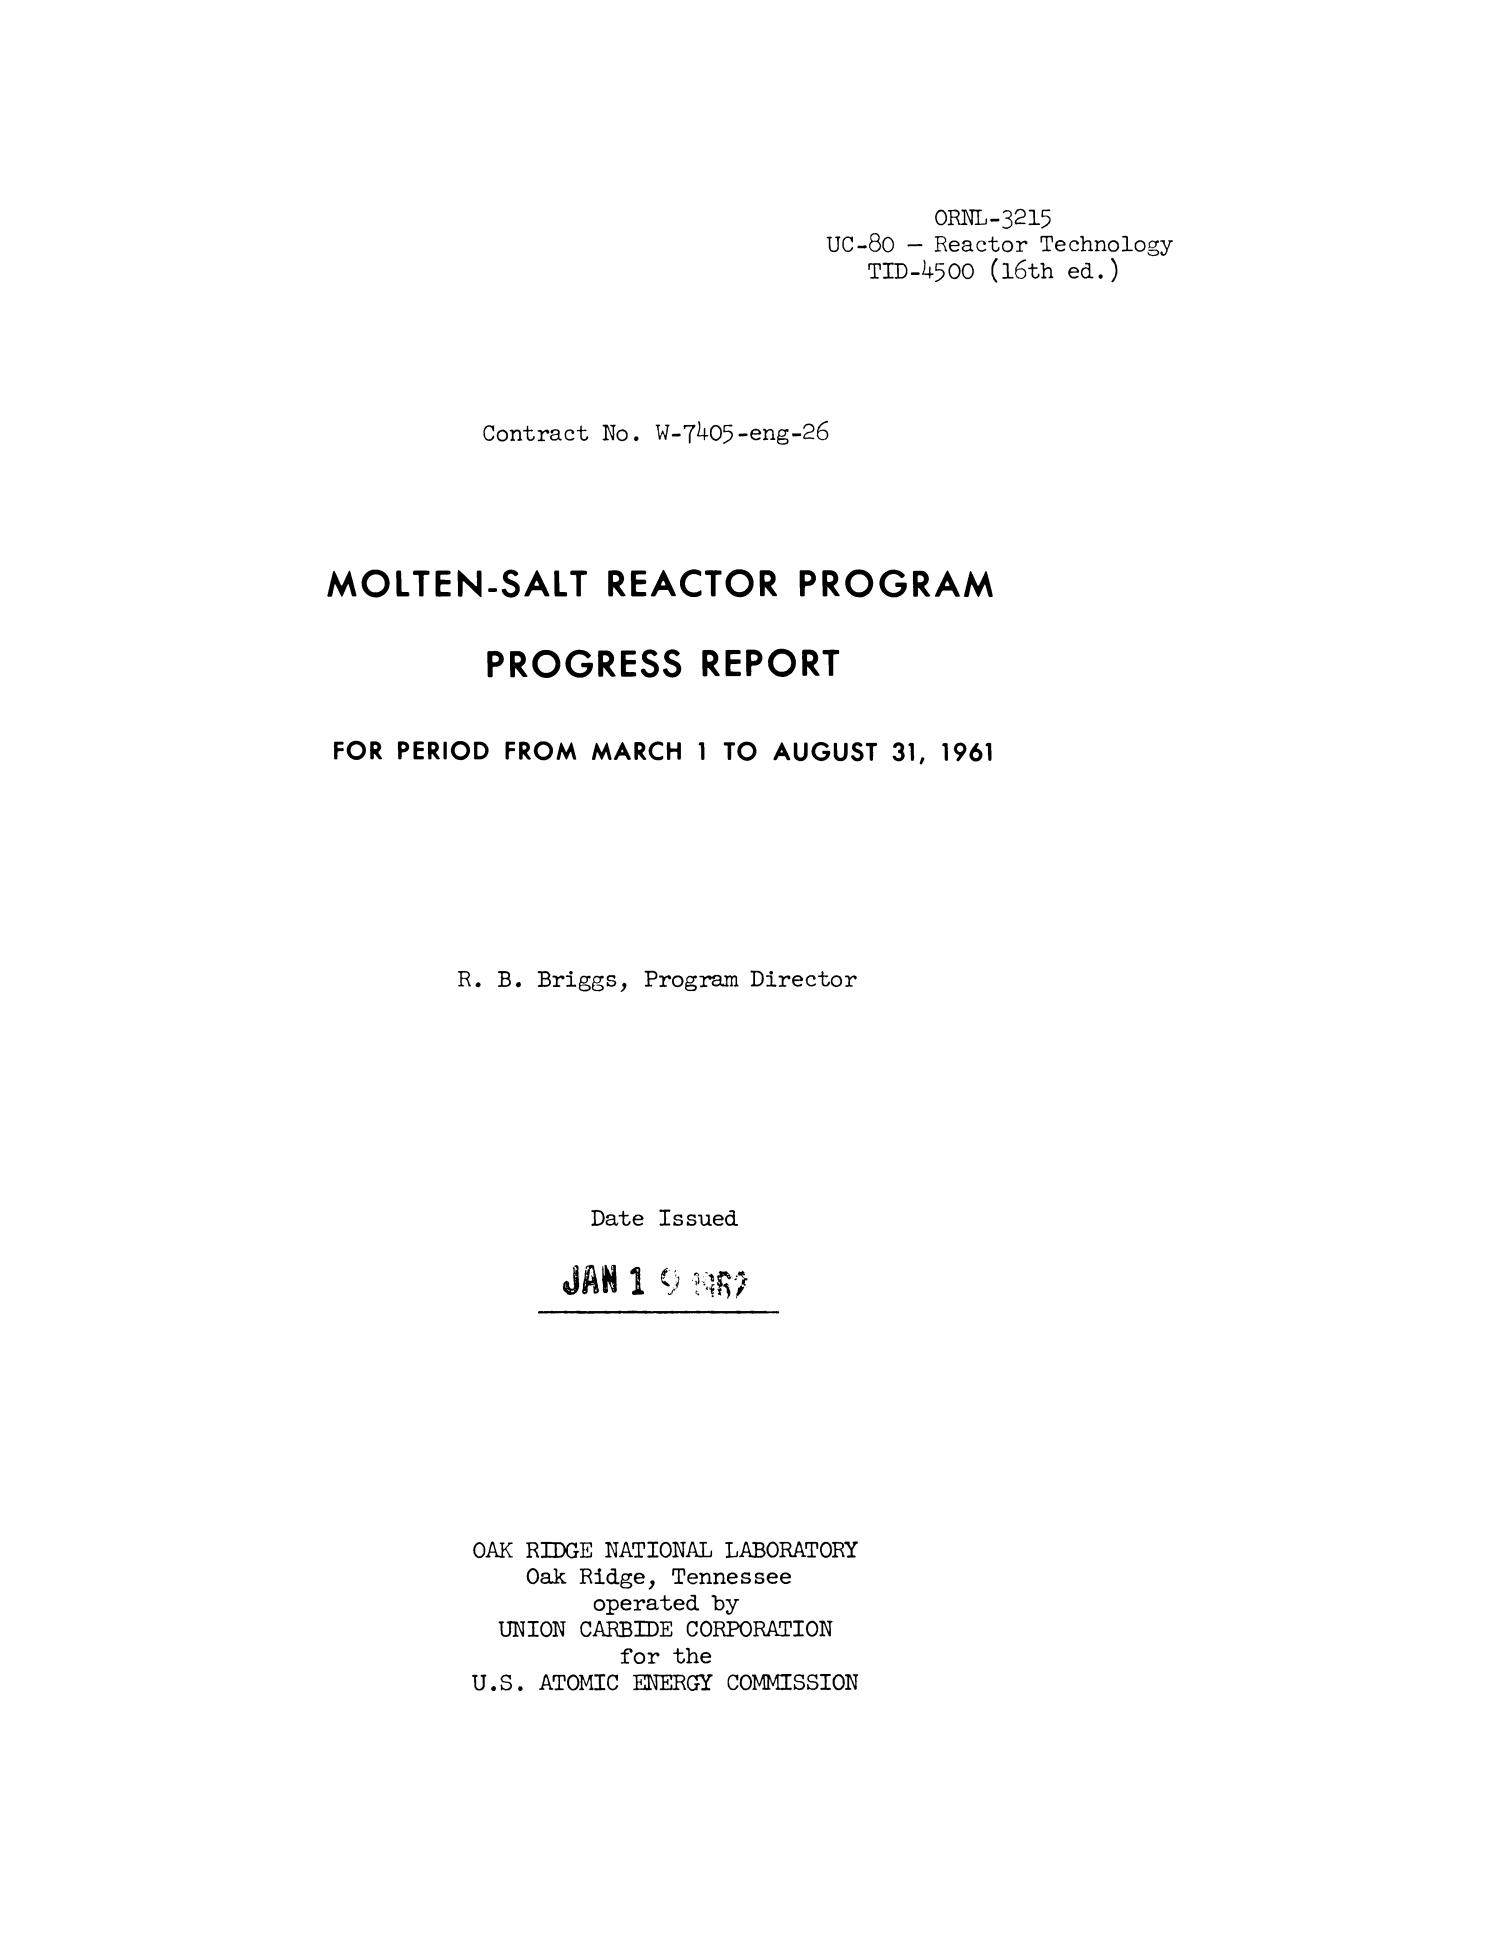 Molten-Salt Reactor Program Semiannual Progress Report, March 1 - August 31, 1961                                                                                                      Title Page